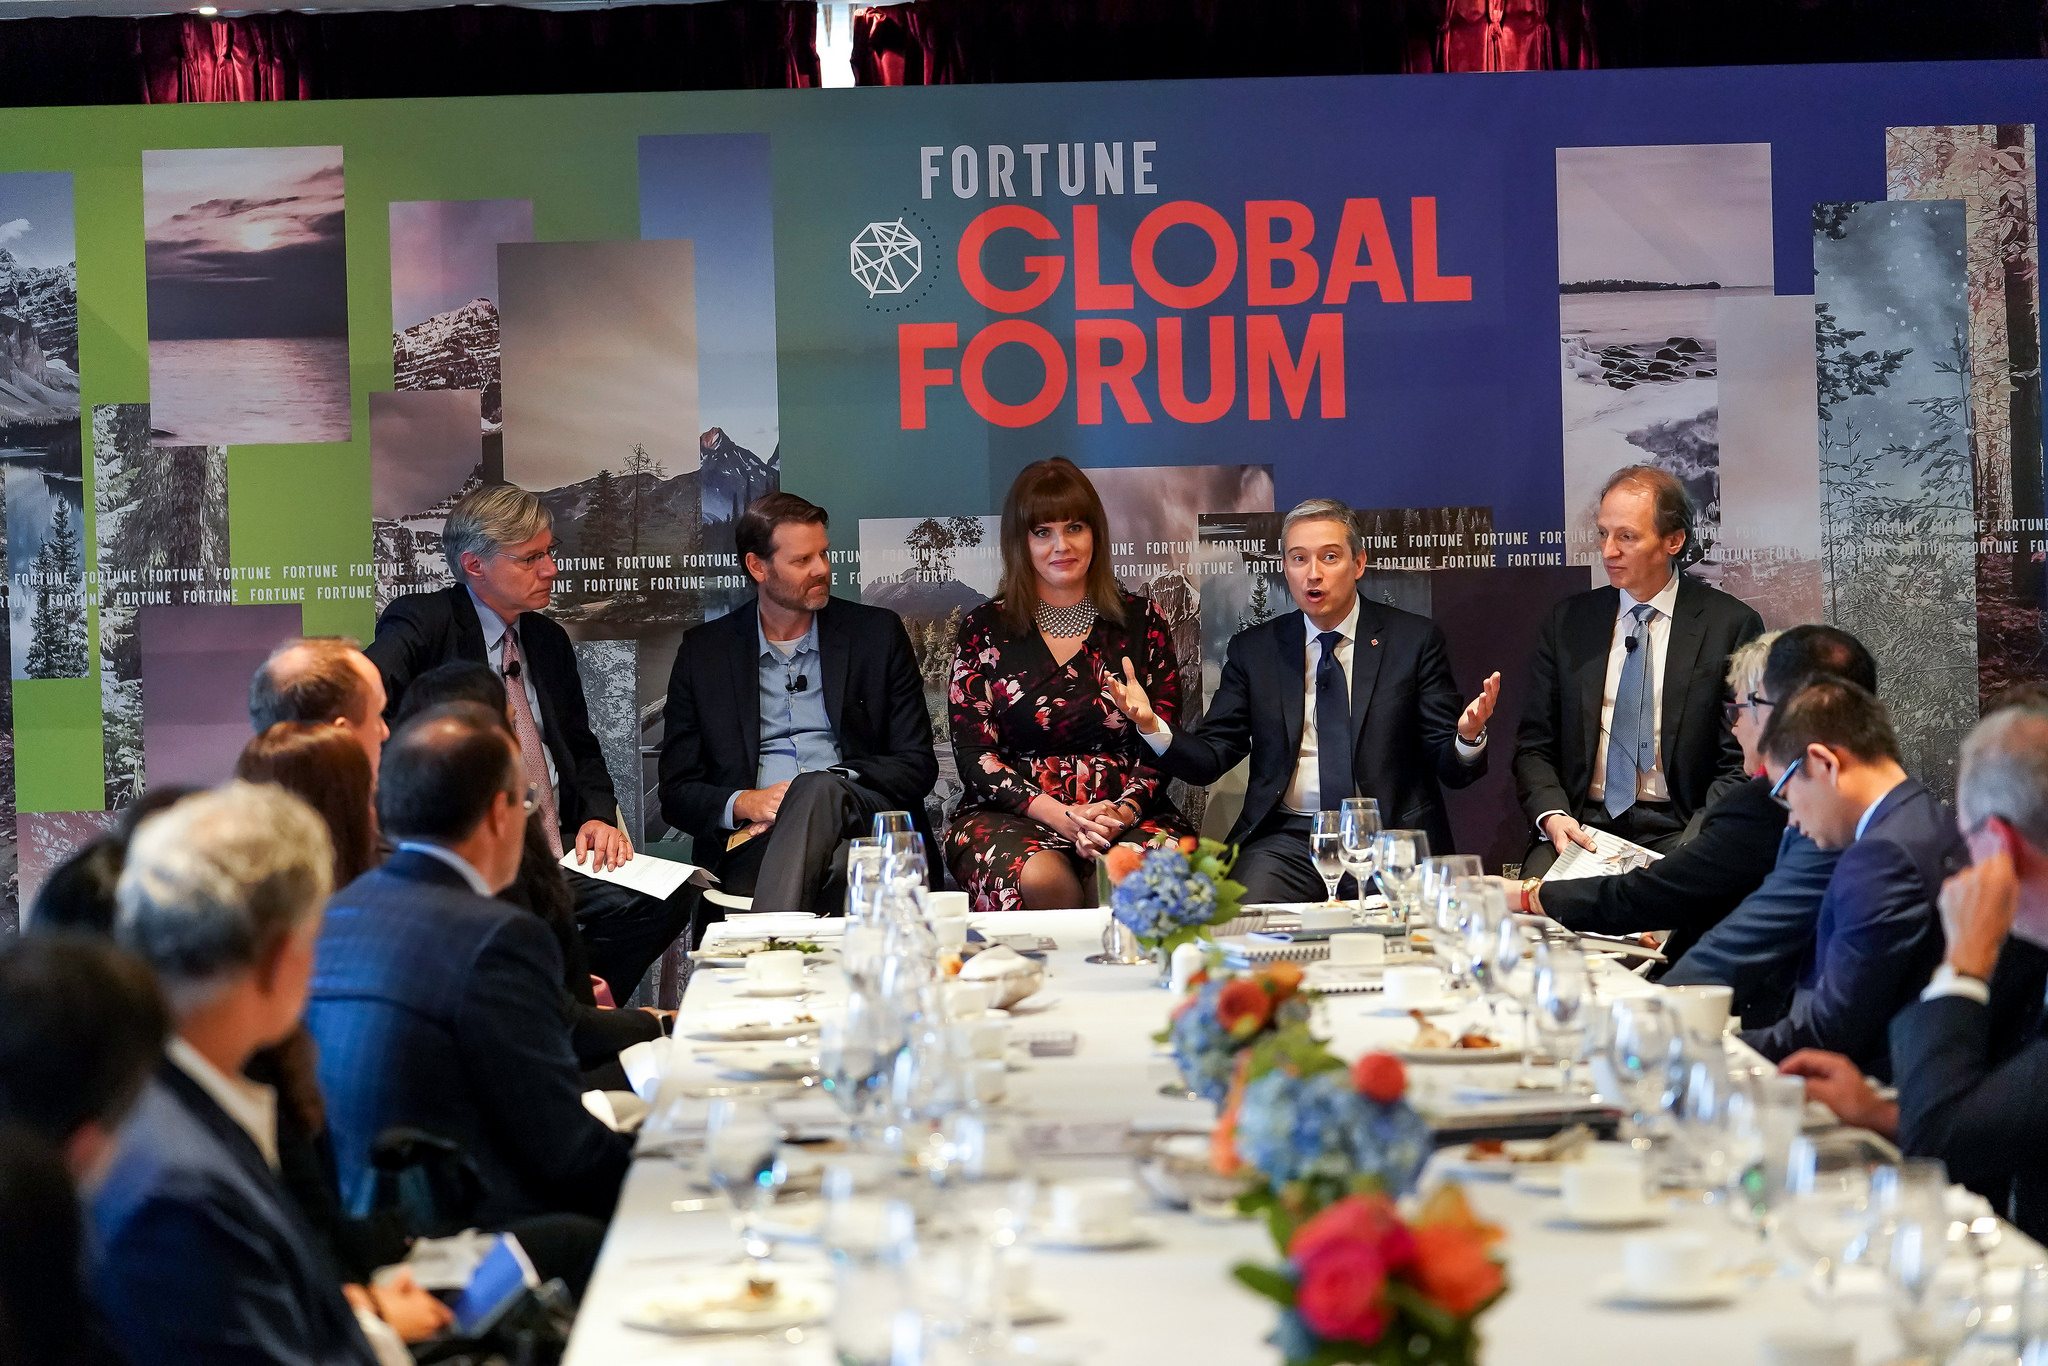 Fortune Global Forum 2018. Toronto, Canada. October 15th, 2018.